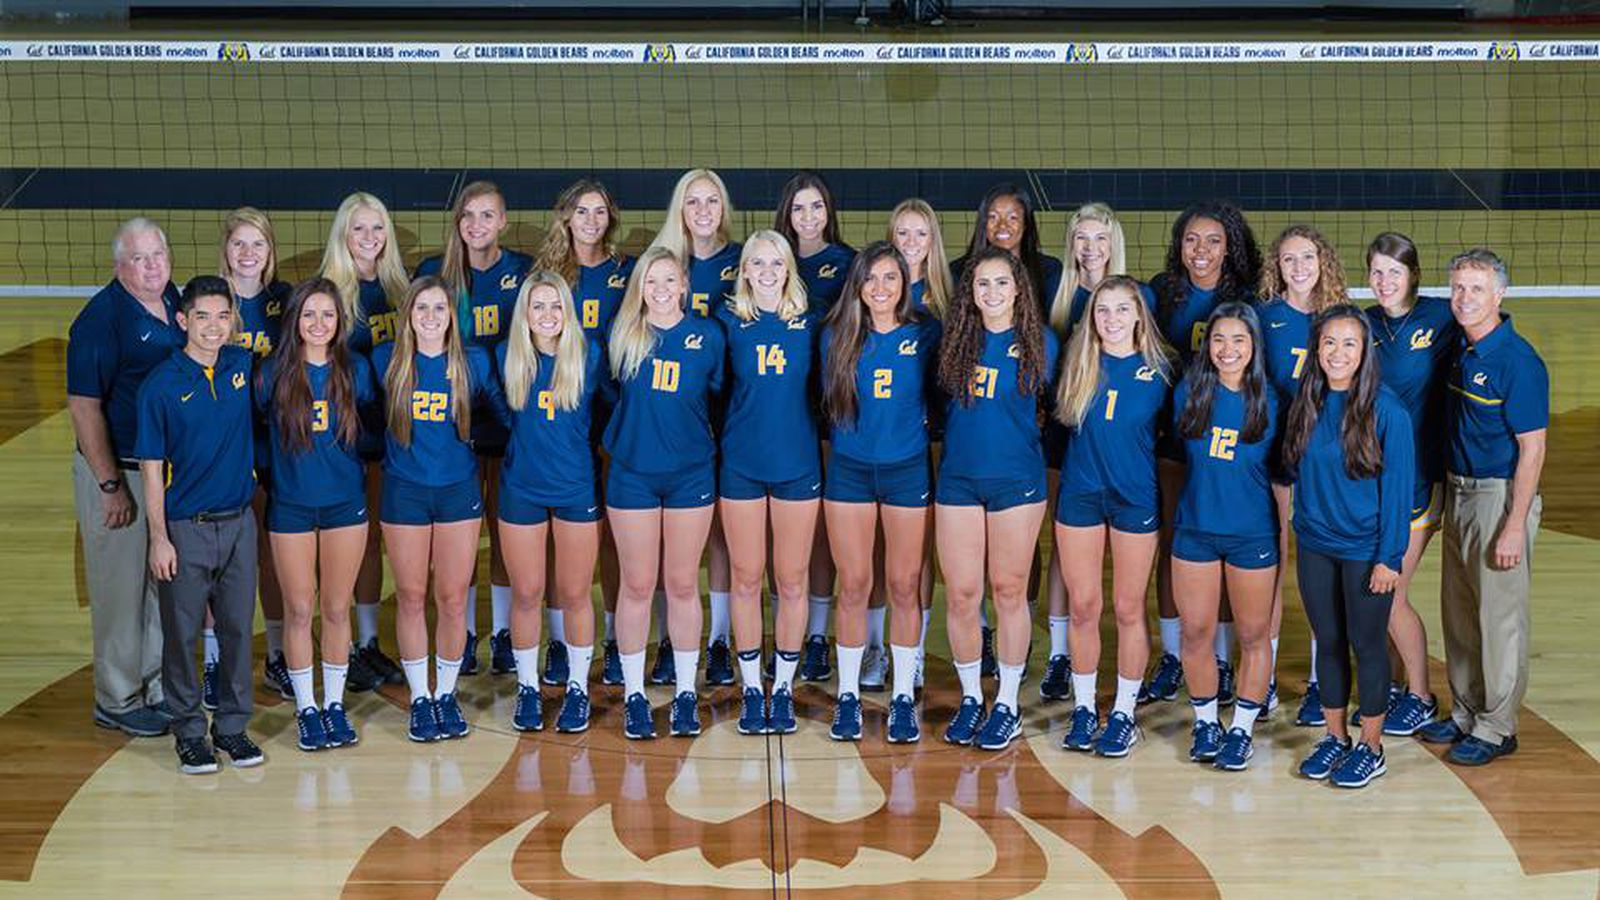 Cal_20volleyball_202016_20team_20photo.0